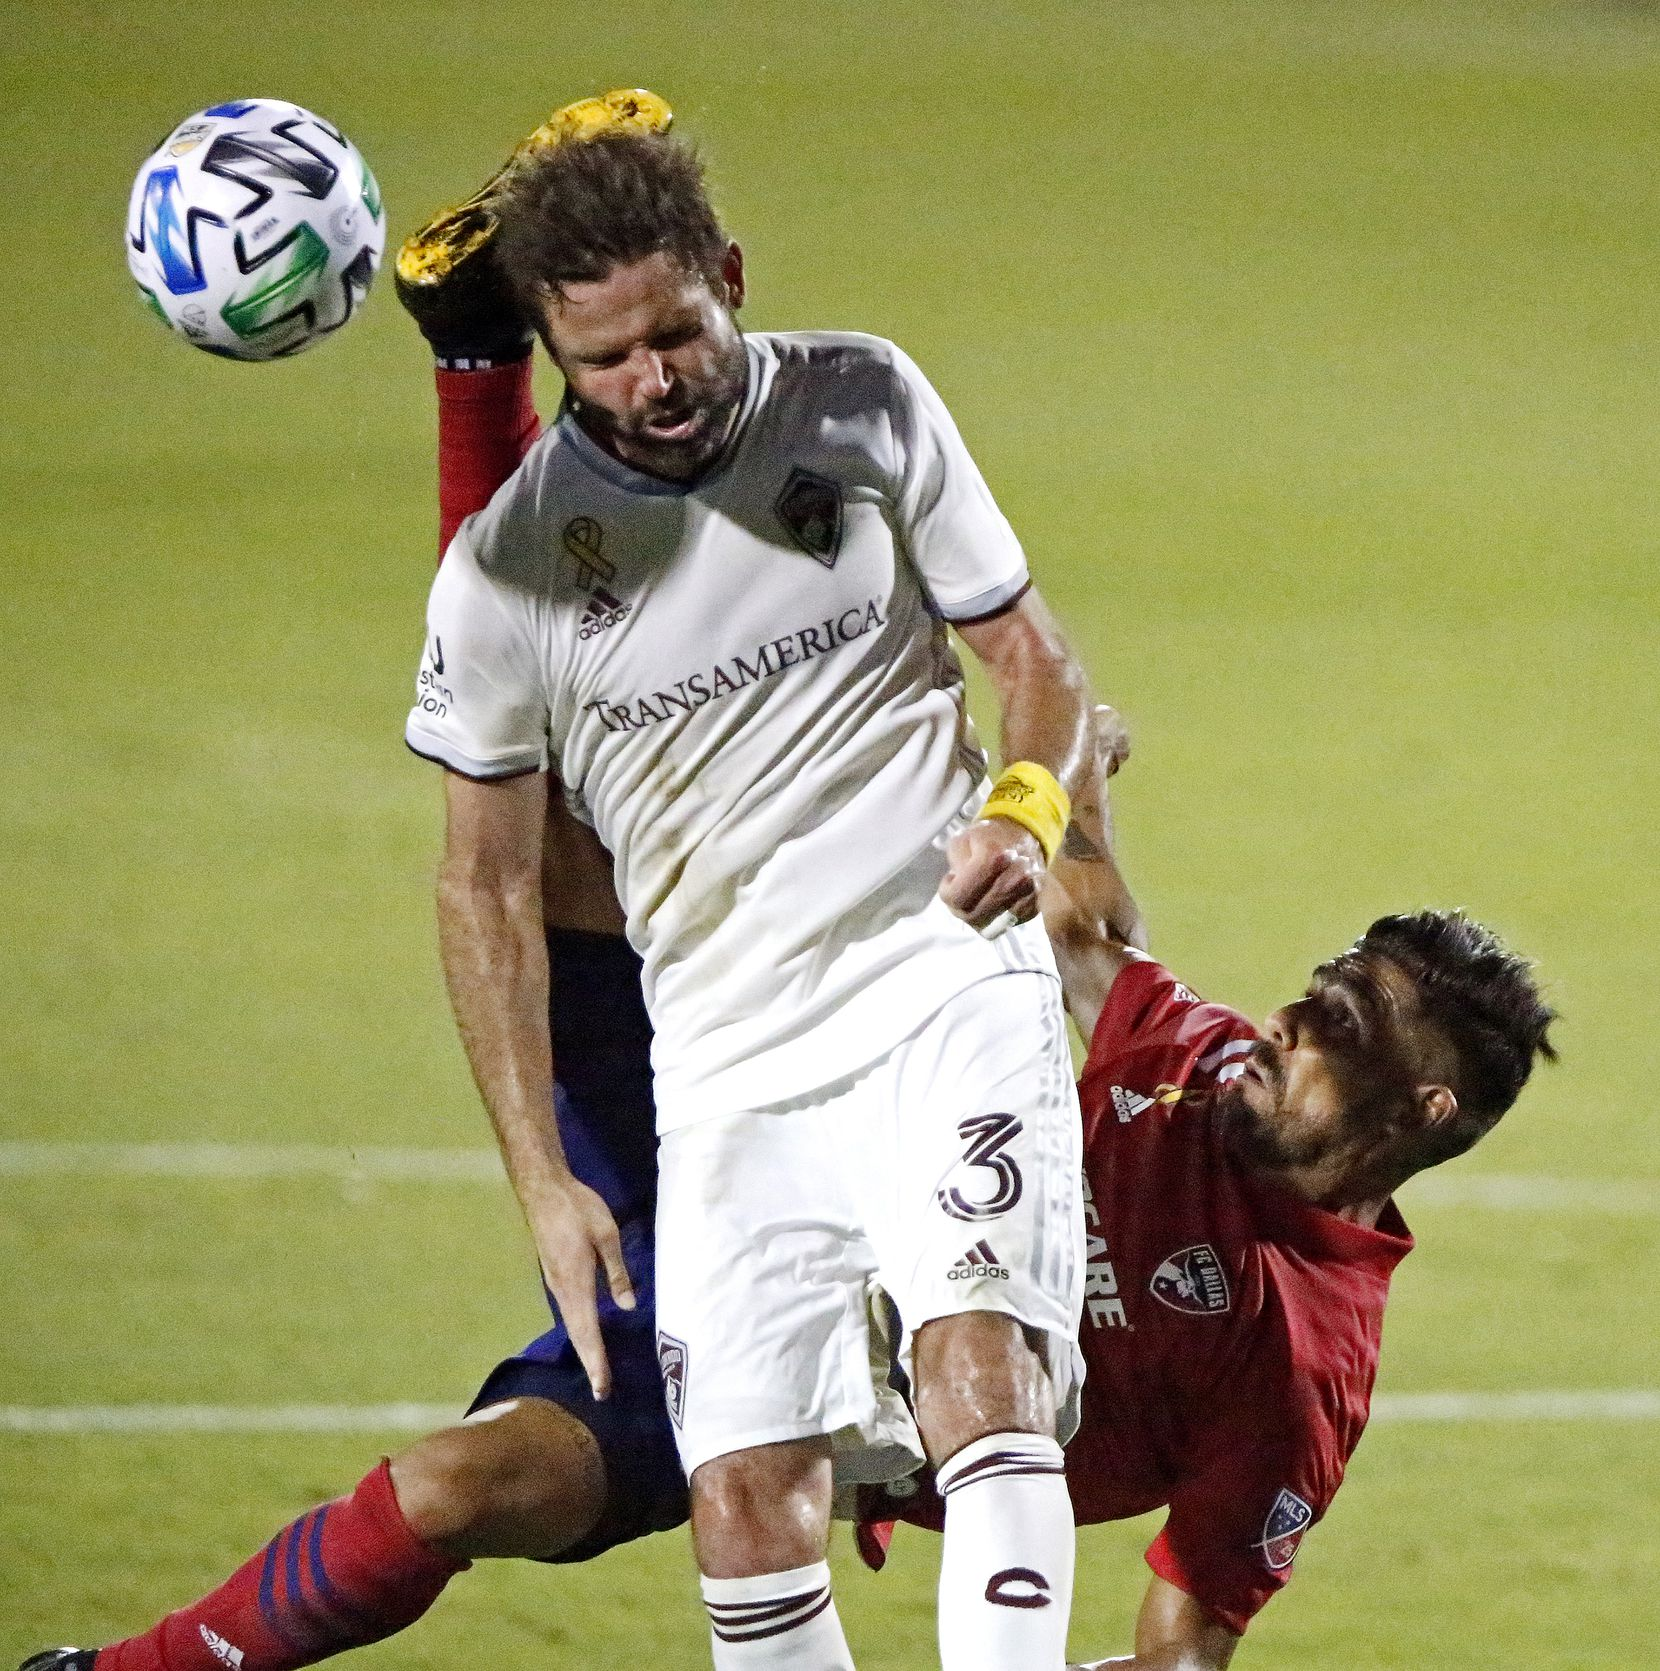 Colorado Rapids defender Drew Moor (3) gets a boot to the head from FC Dallas forward Franco Jara during the first half as FC Dallas hosted the Colorado Rapids at Toyota Stadium in Frisco on Wednesday night, September 16, 2020. (Stewart F. House/Special Contributor)